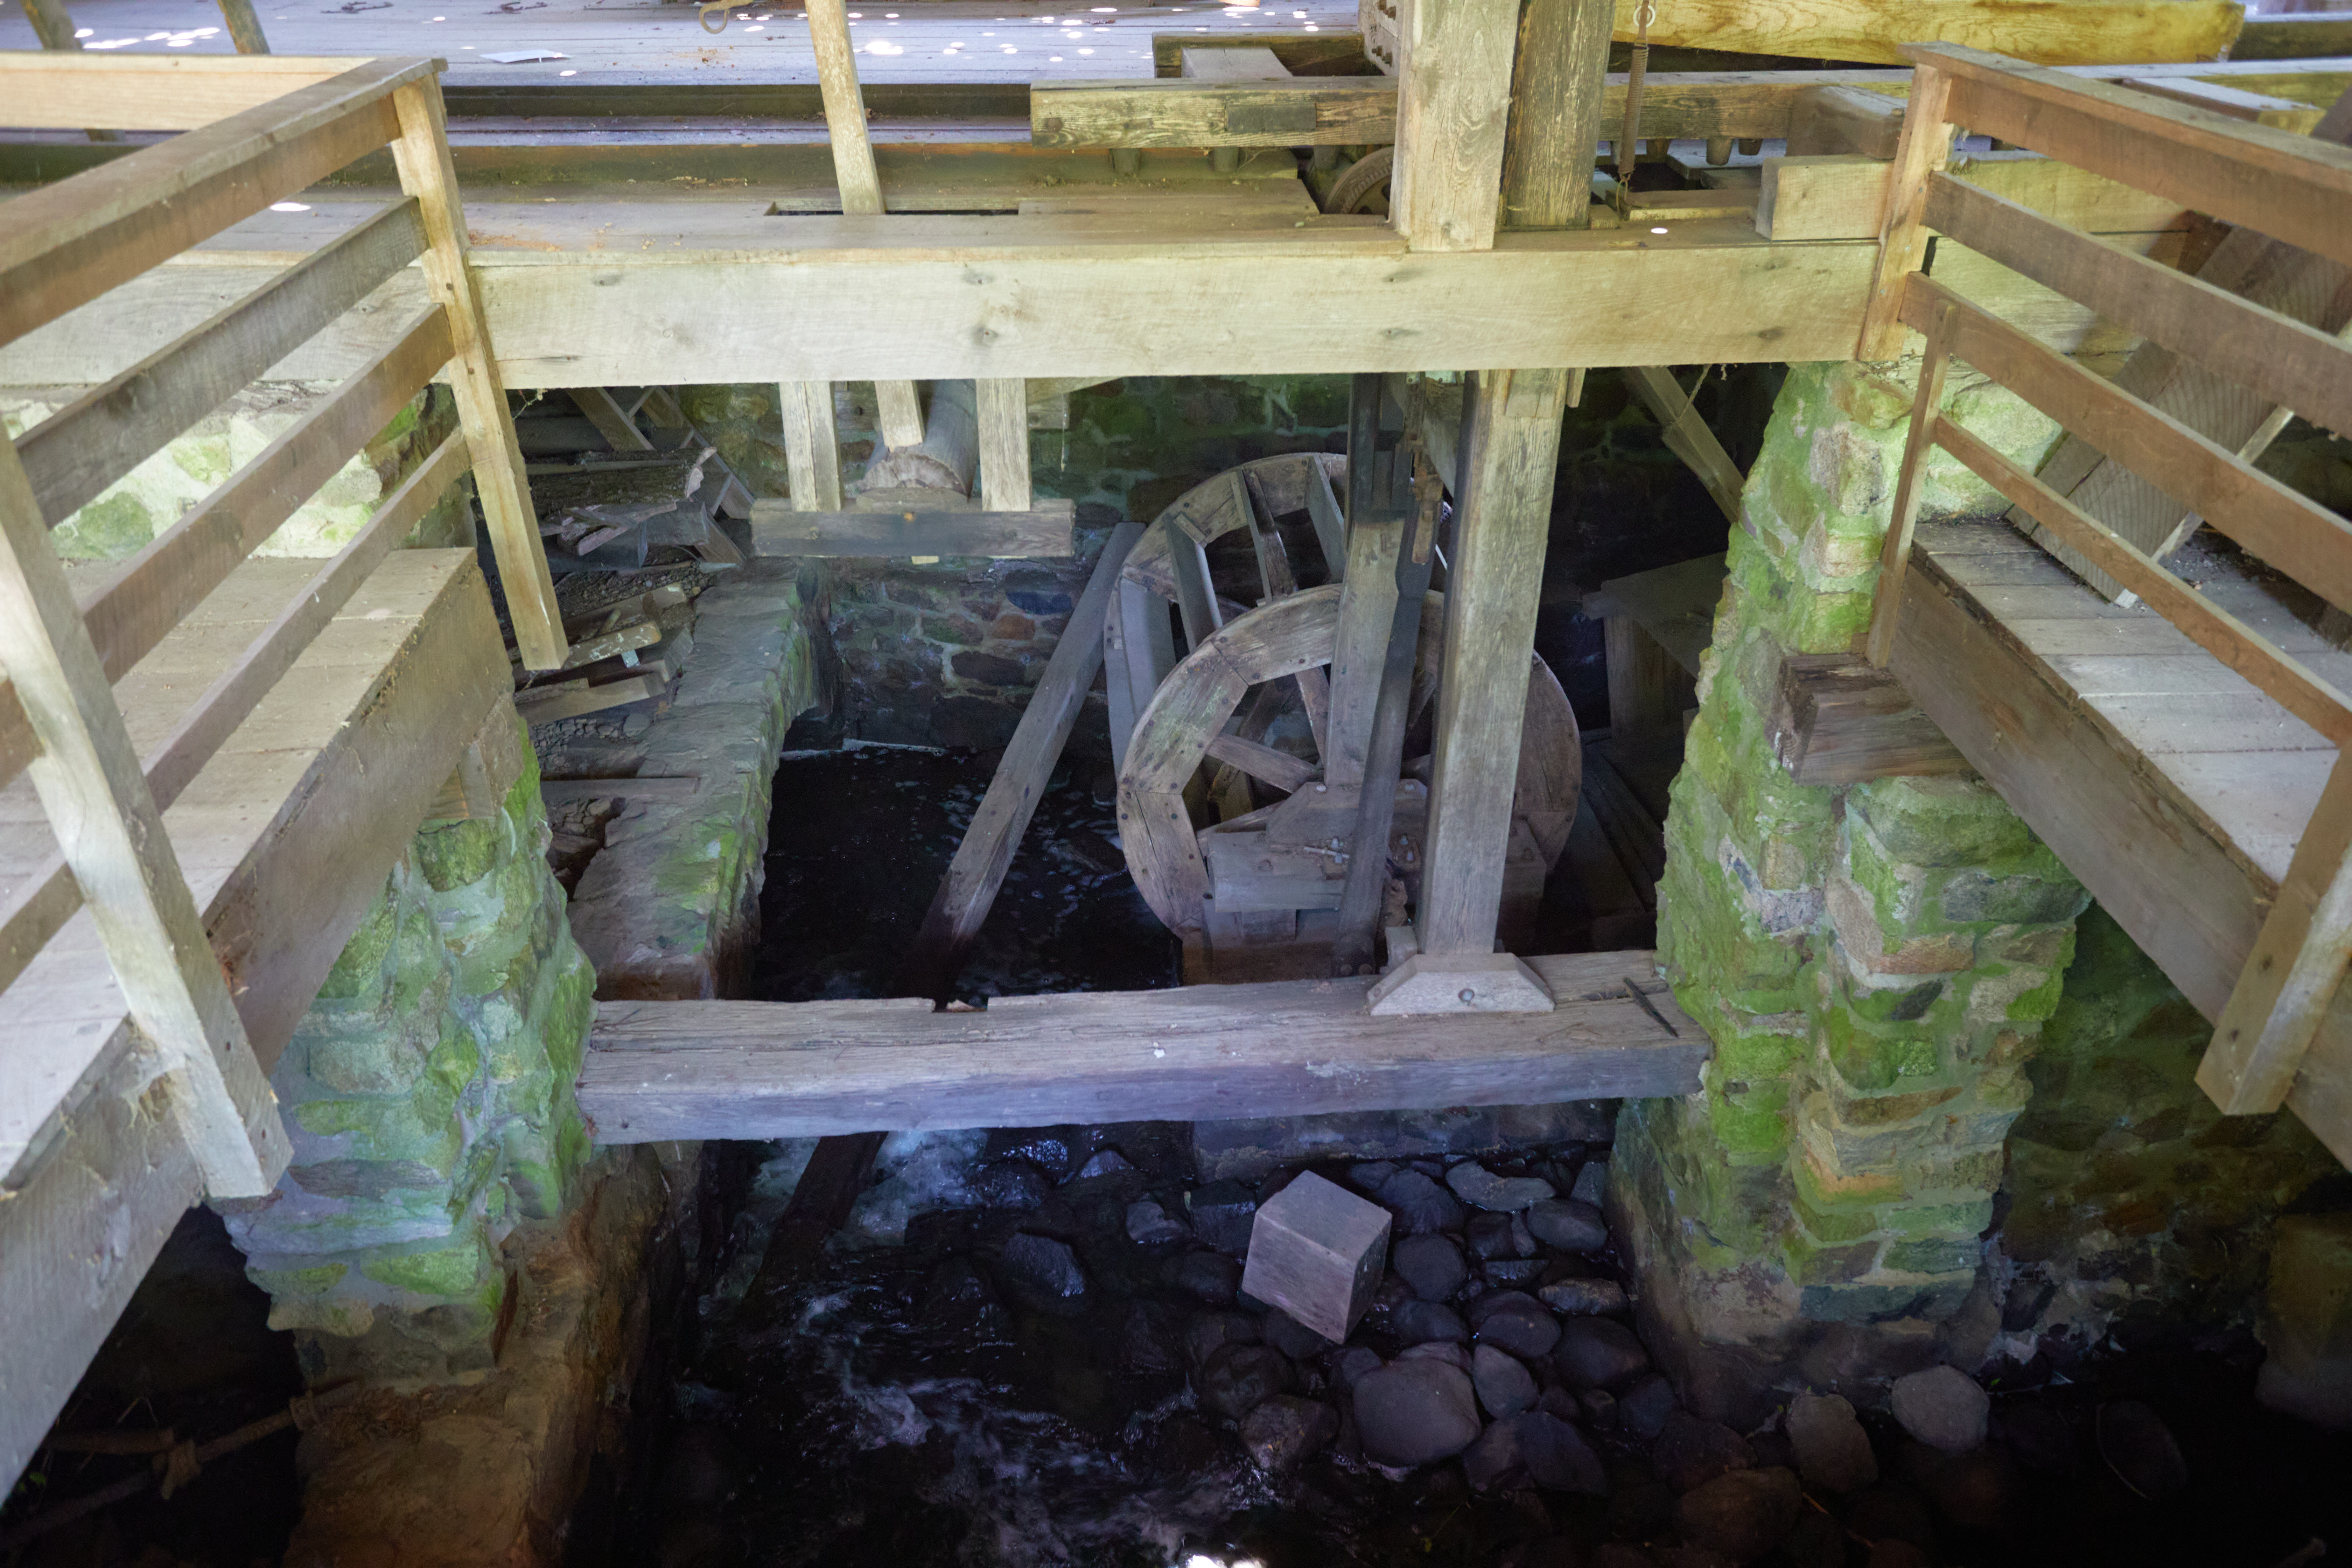 View of water wheel beneath gristmill.